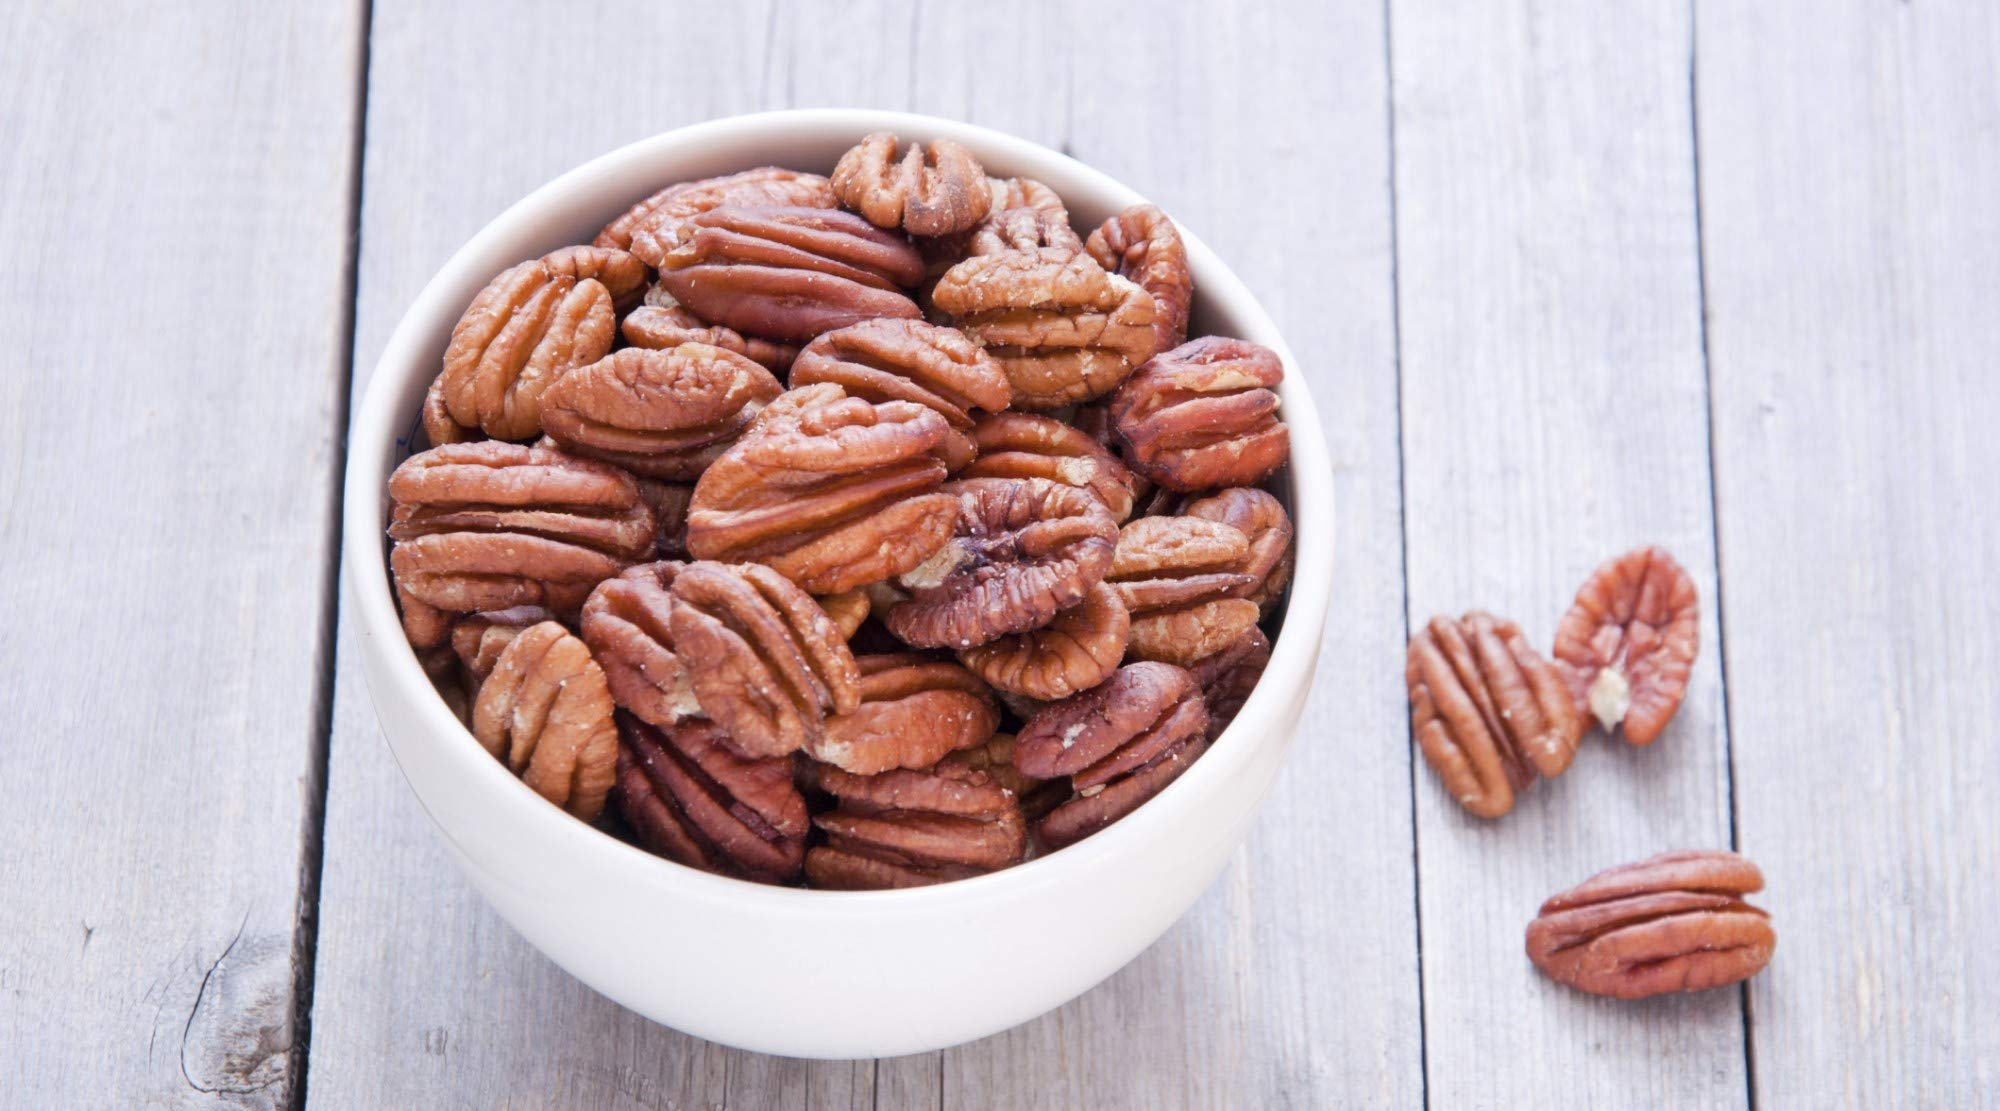 Pecan - Bulk Pecan Halves 10 Pound Value Box - Freshest and highest quality nuts from US Based farmer market - Quality nuts for homes, restaurants, and bakeries. (10 Lbs)